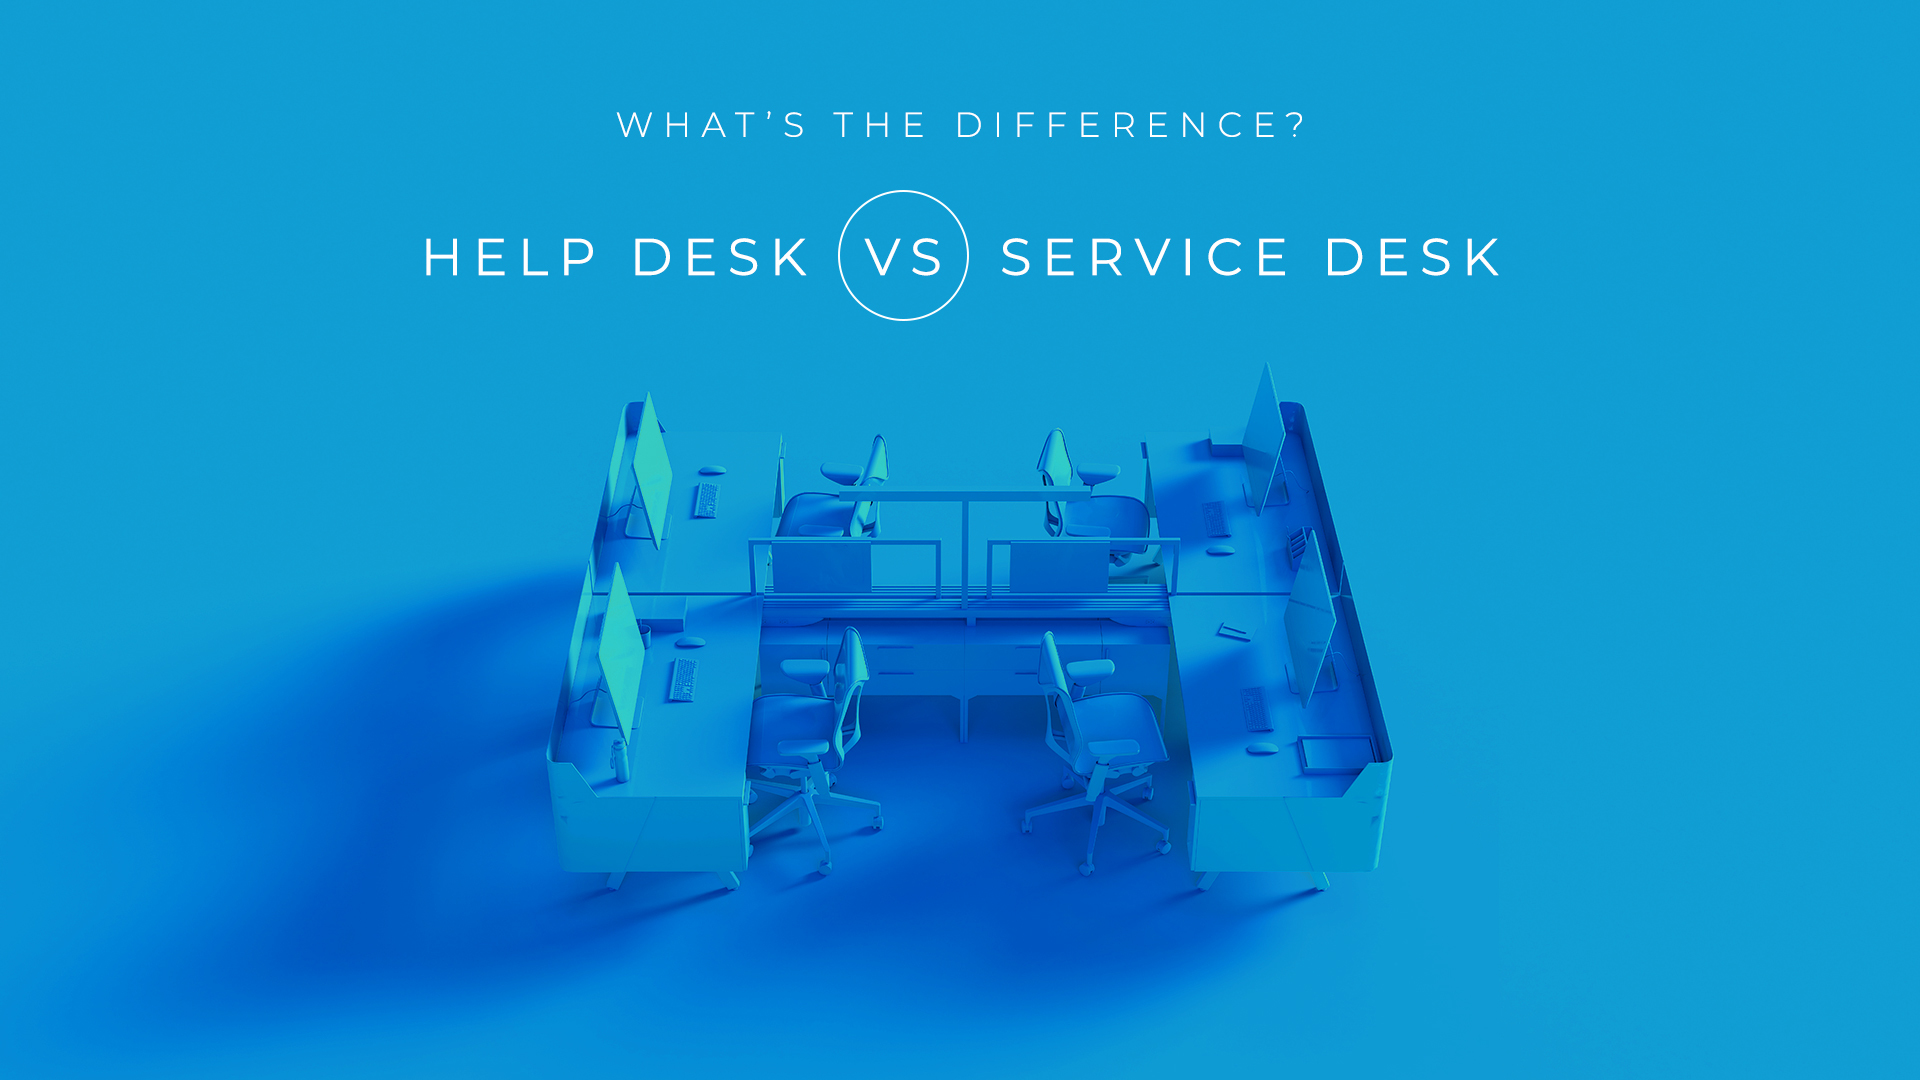 What's the Difference? Help Desk vs. Service Desk